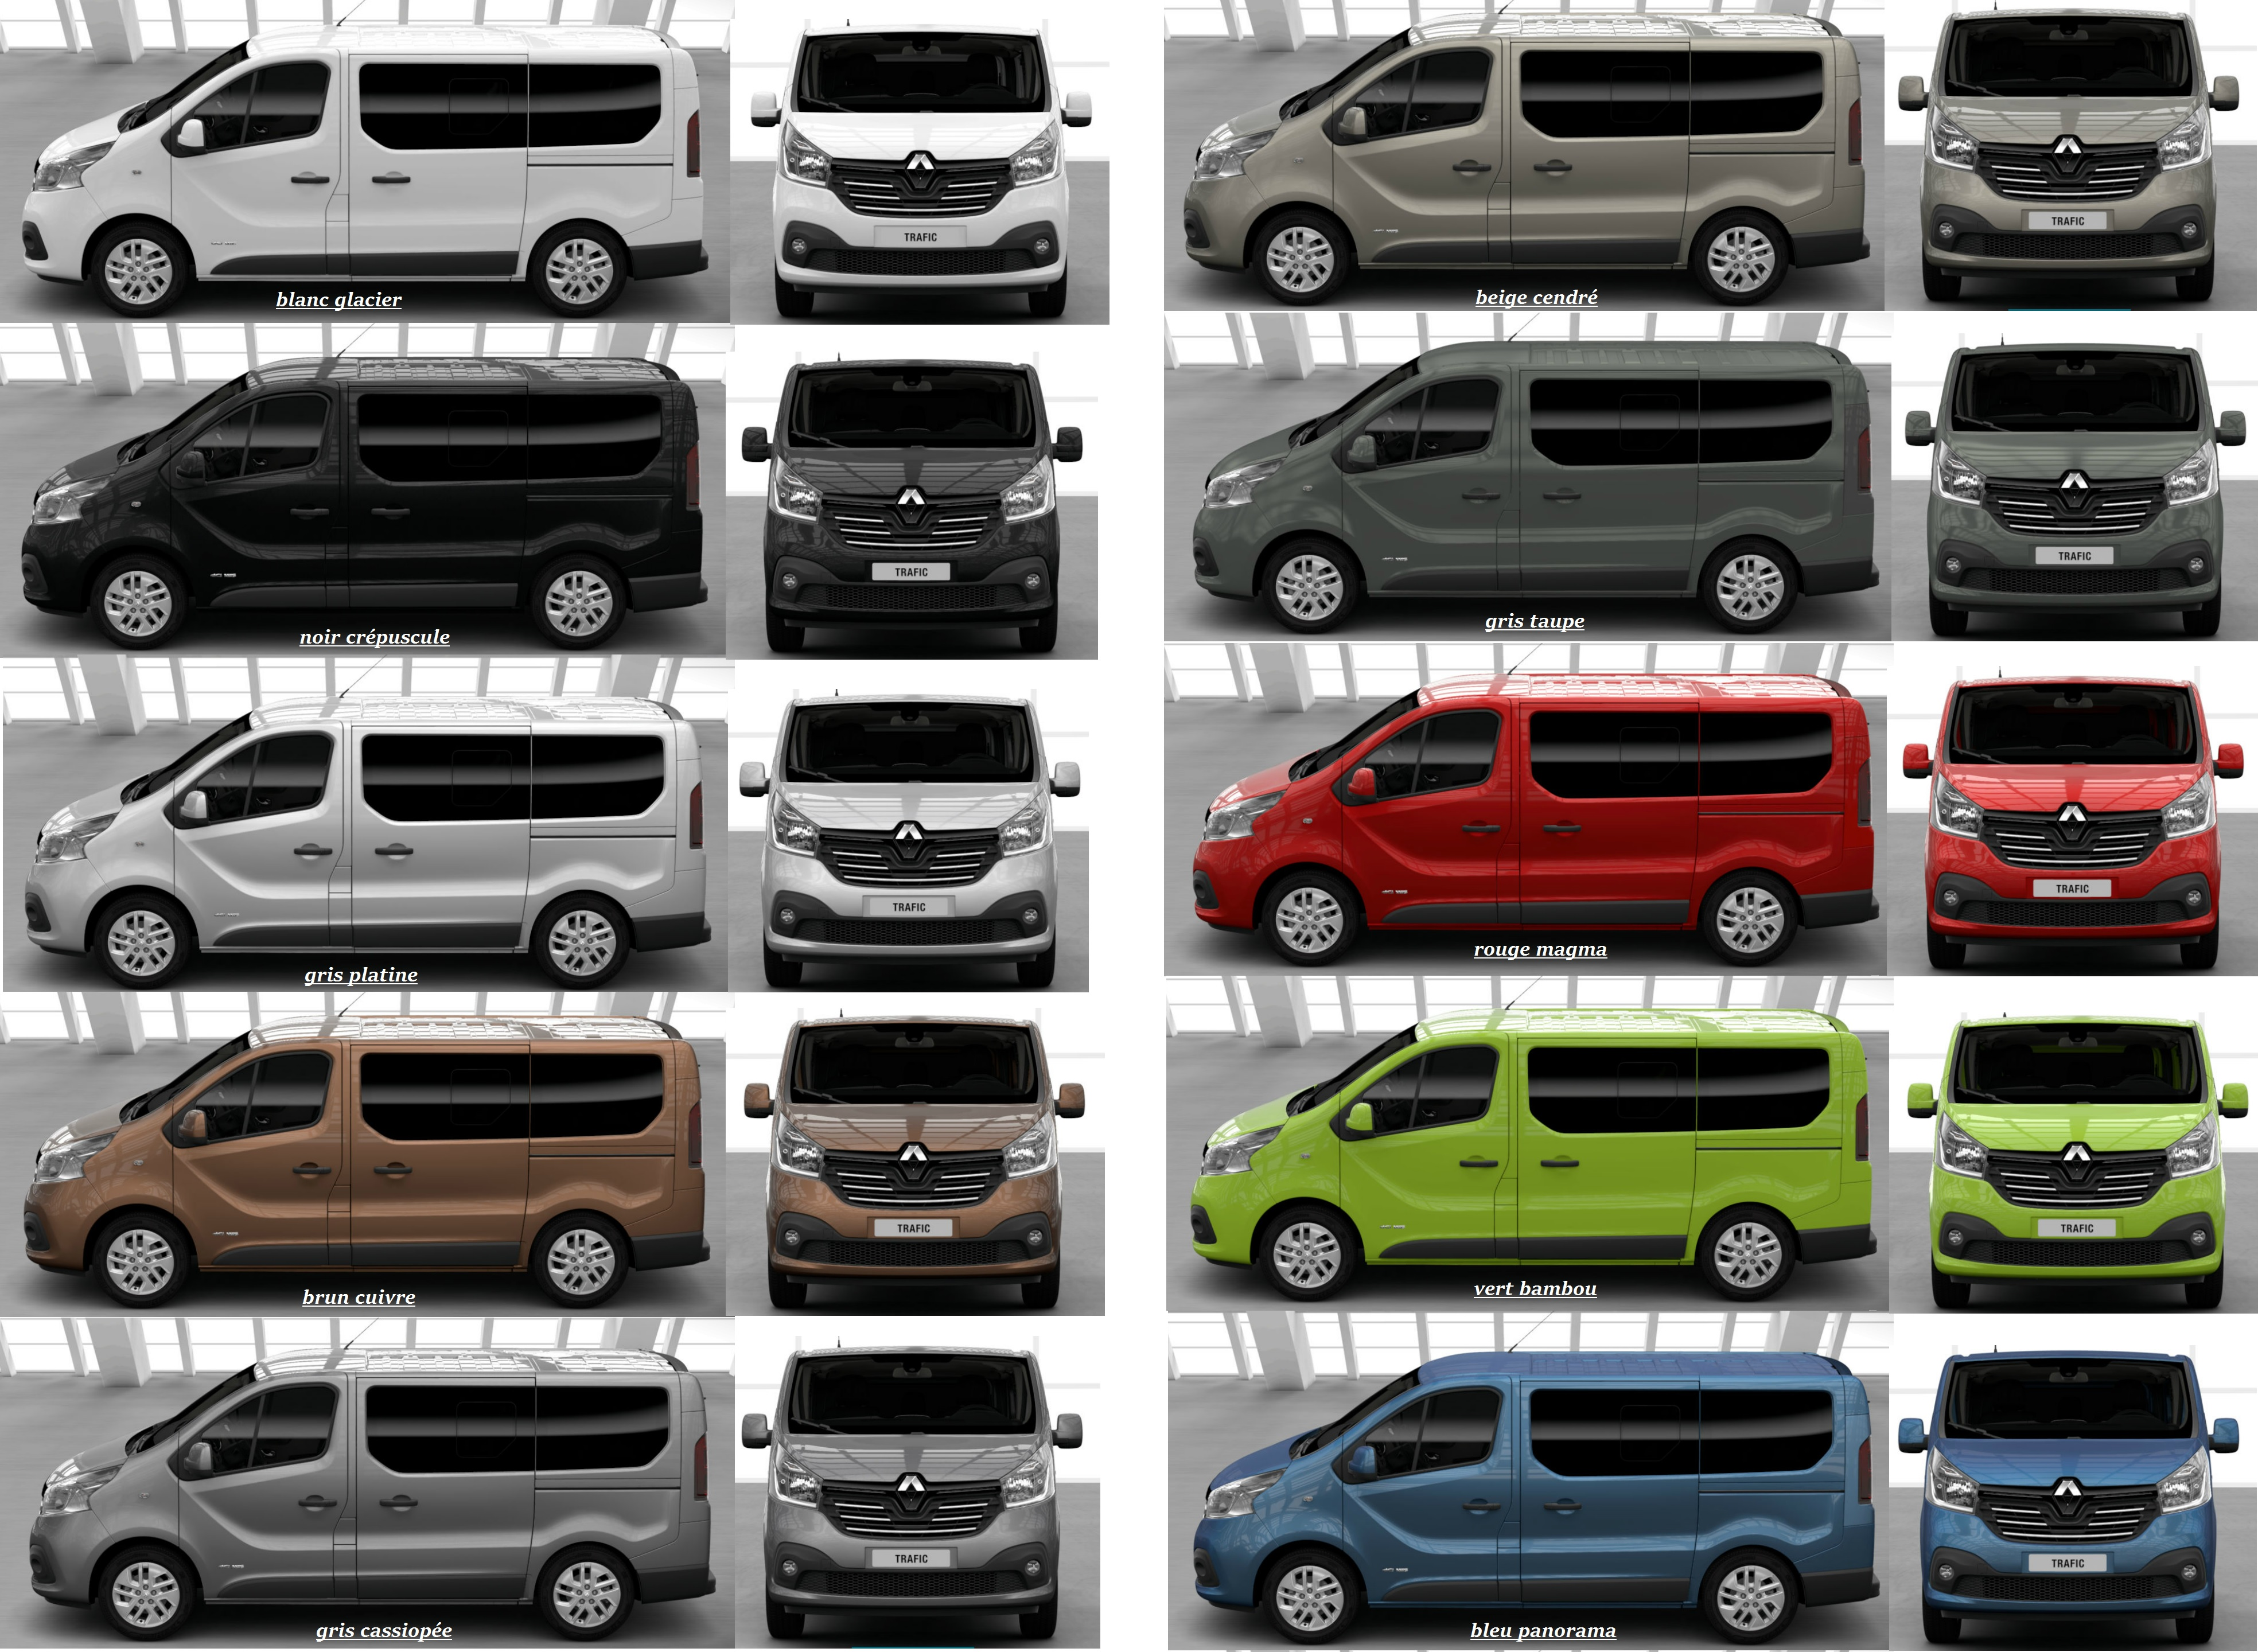 couleurs trafic 3 renault trafic 3 lolodav photos club. Black Bedroom Furniture Sets. Home Design Ideas